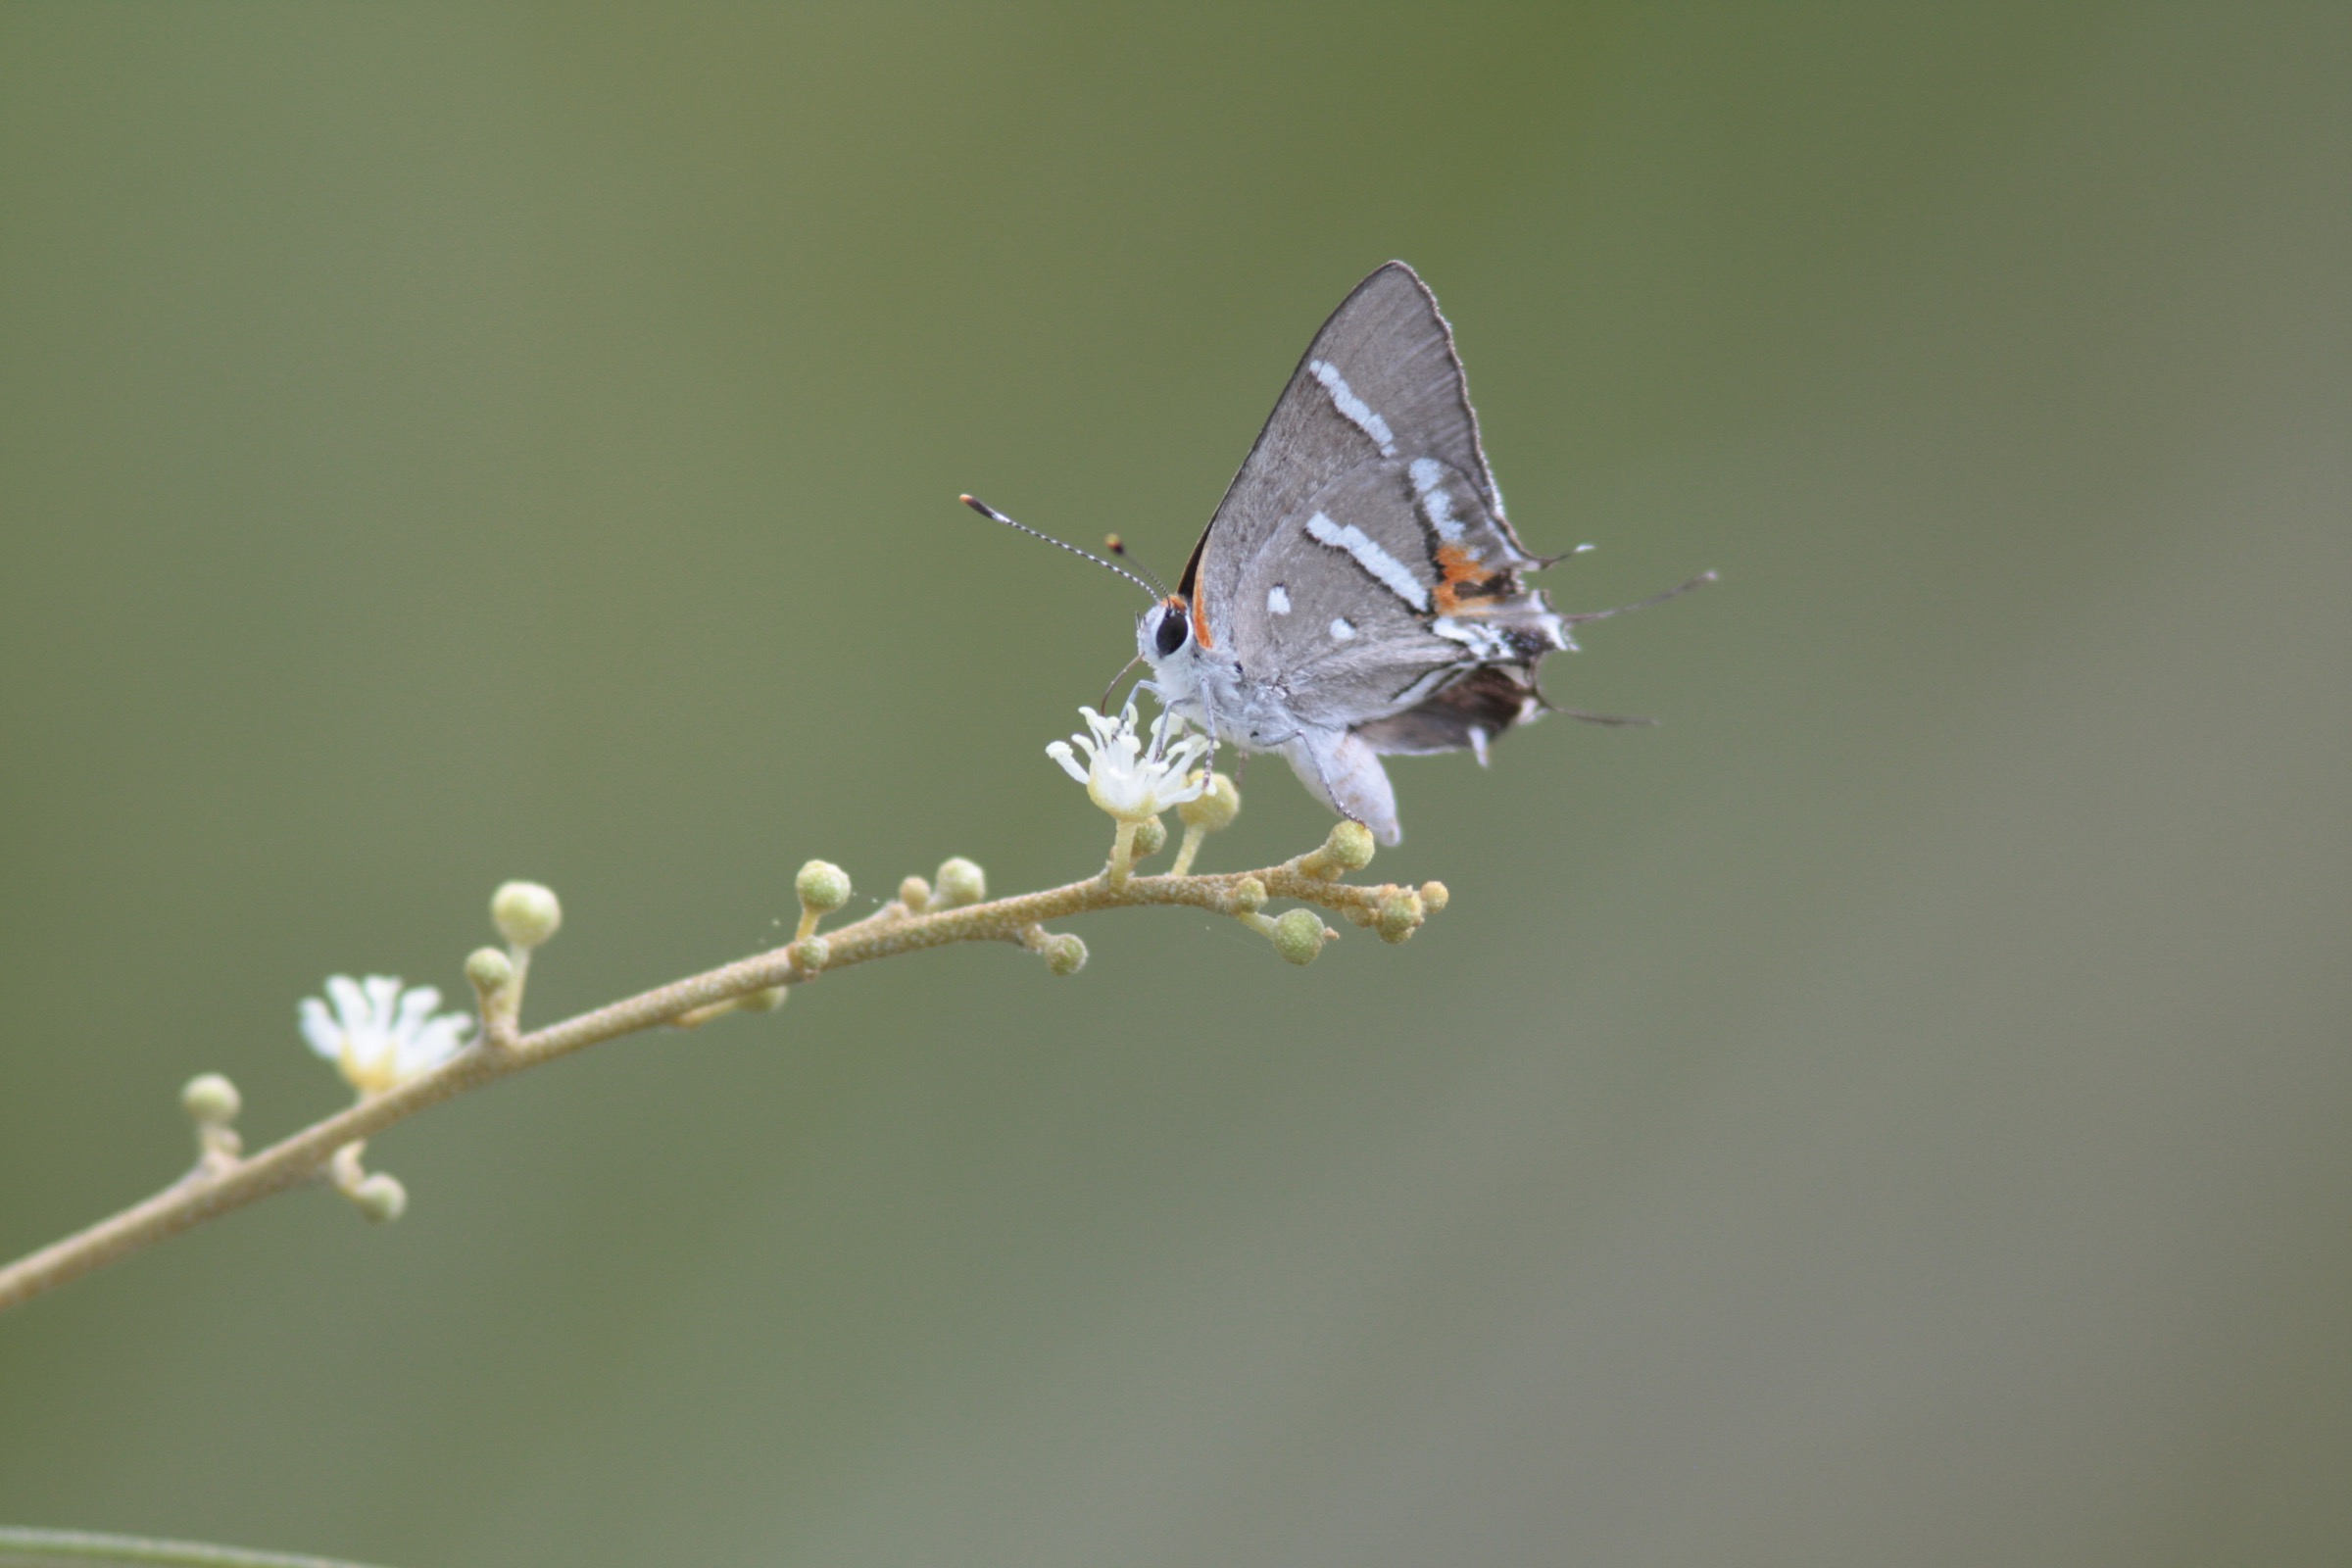 Bartram's scrub hairstreak butterflies depend on the rare pineland croton (<em>Croton linearis</em>) for food. Photograph by Chad Anderson